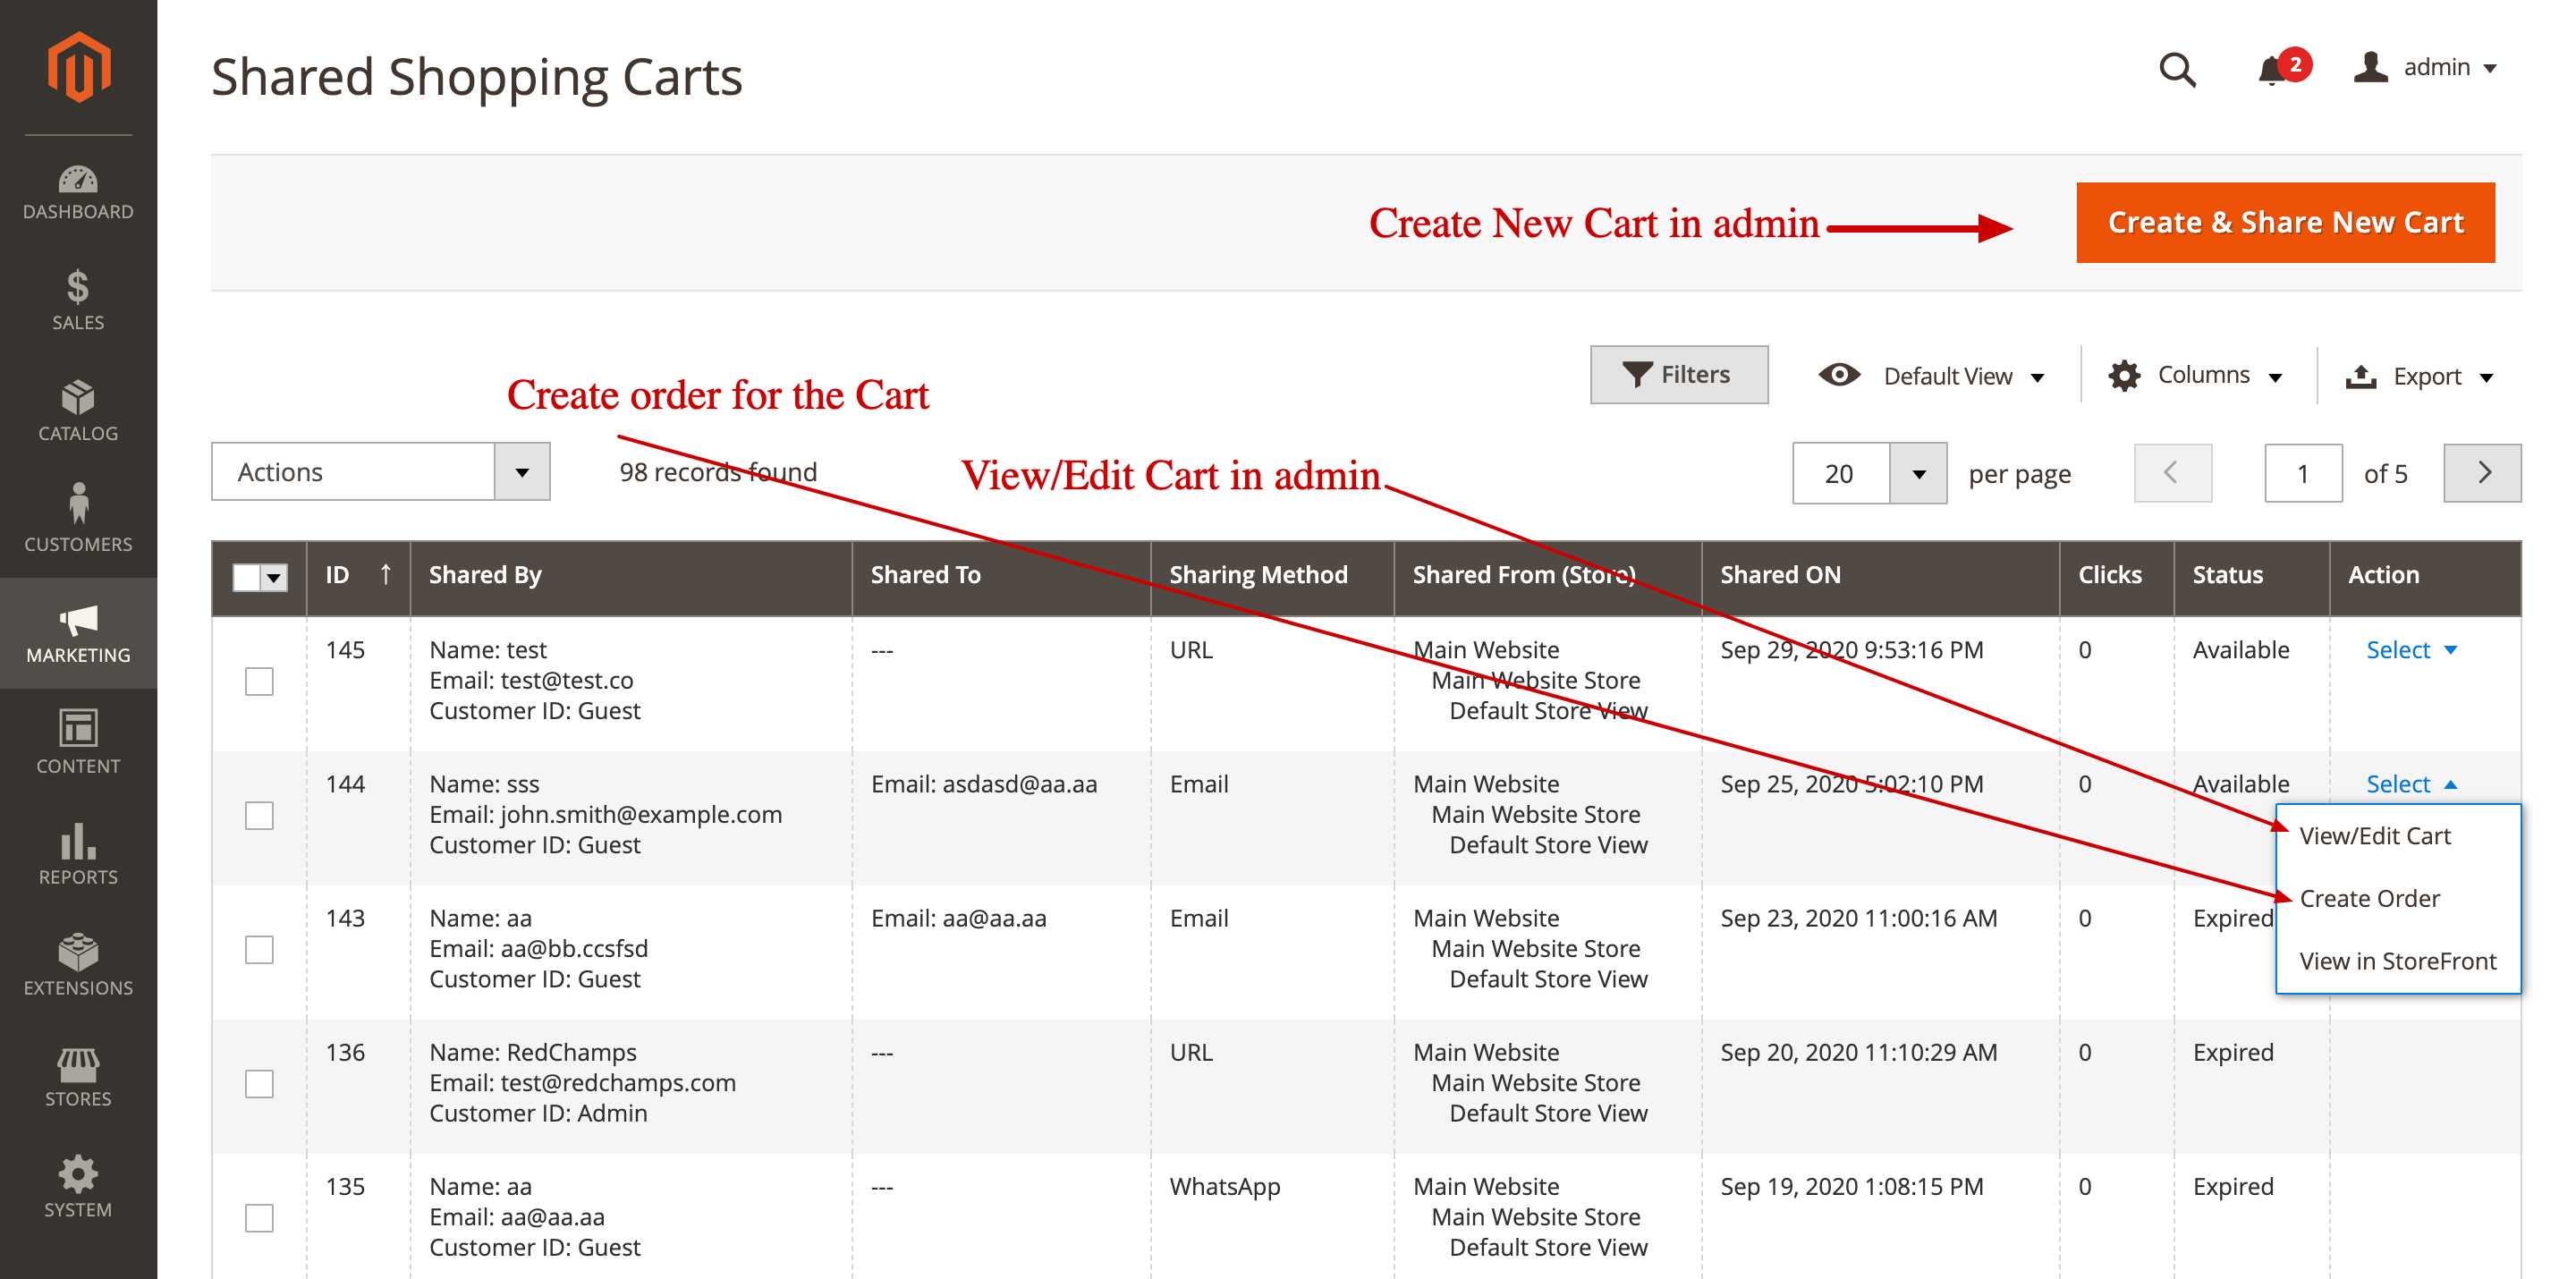 Shared Shopping Carts list in Magento Backend